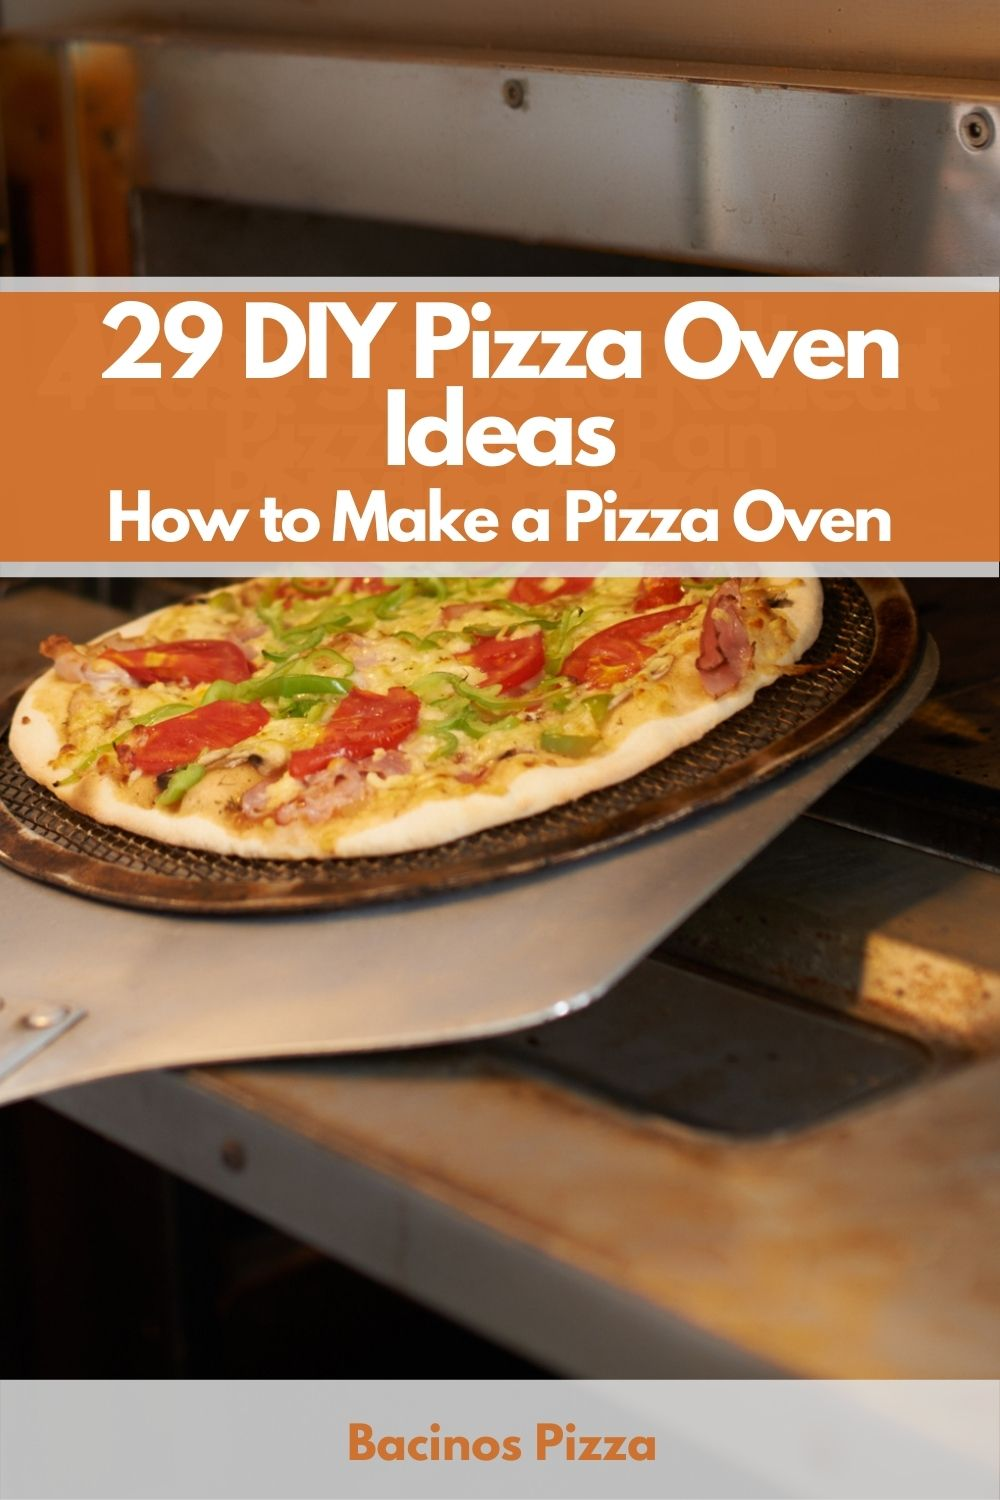 29 DIY Pizza Oven Ideas - How to Make a Pizza Oven pin